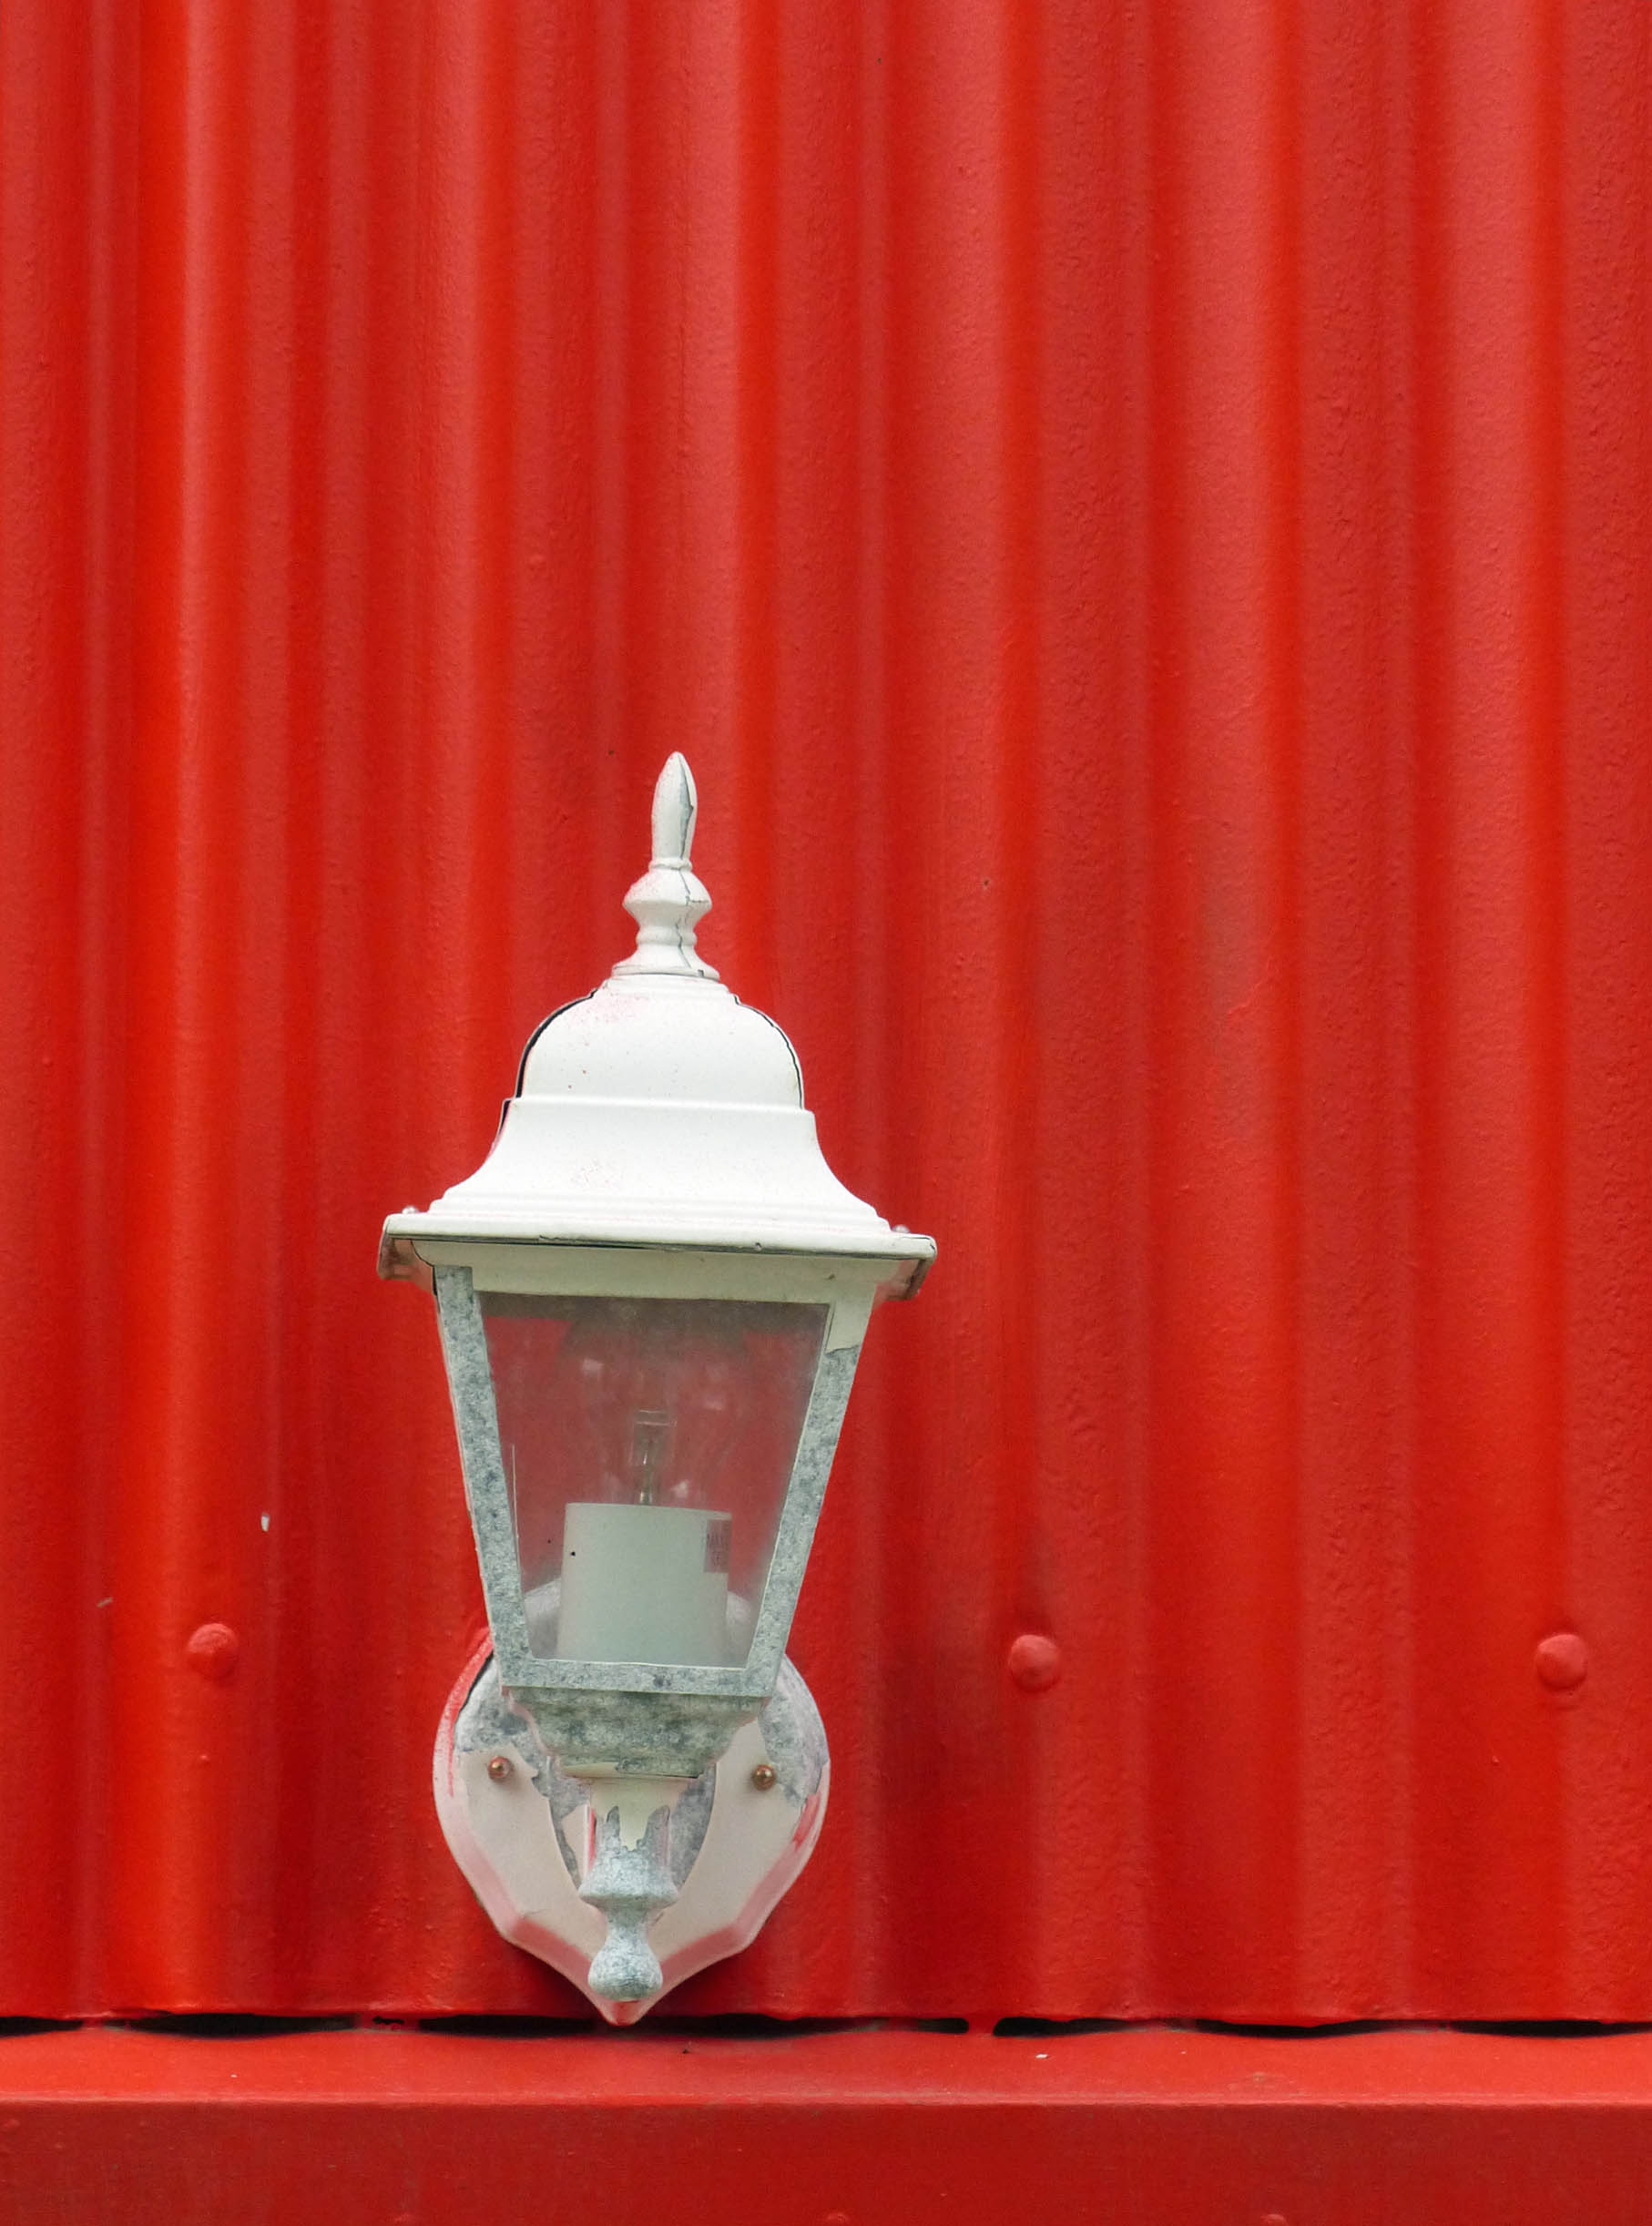 Red wall with small white wall lamp